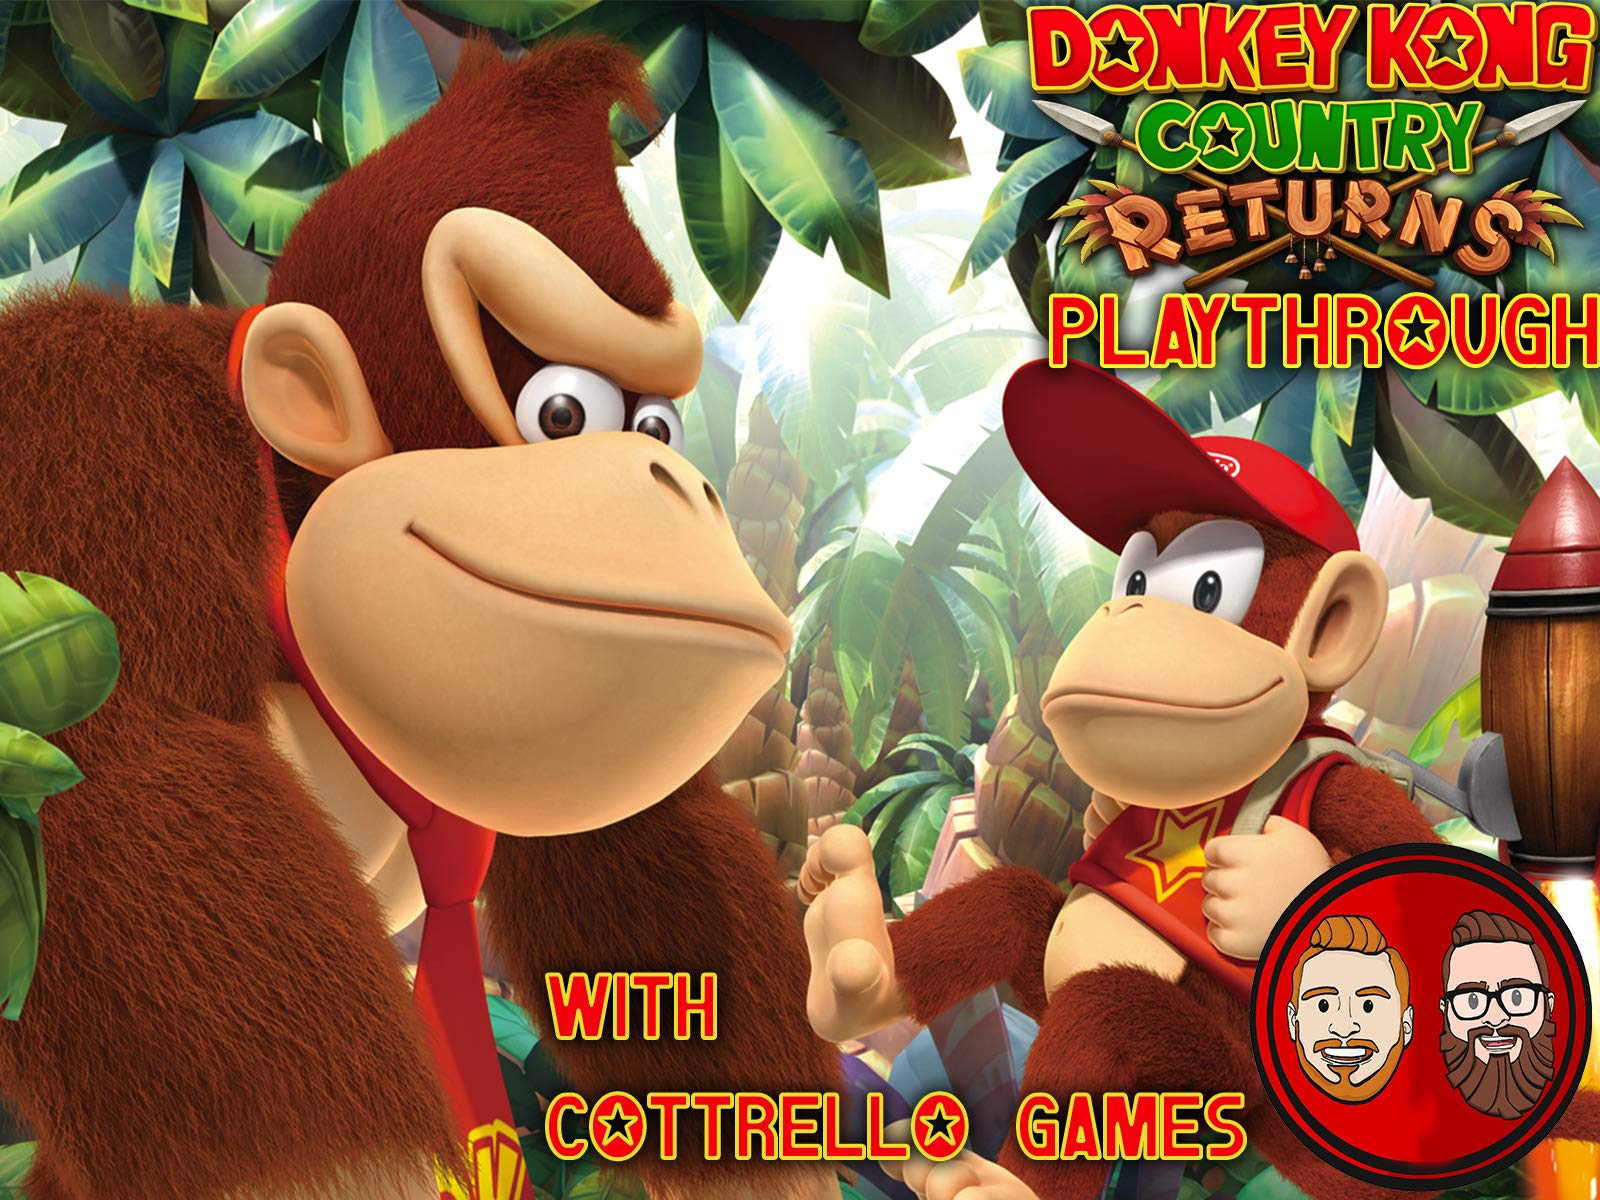 Donkey Kong Country Returns Multiplayer Playthrough with Cottrello Games